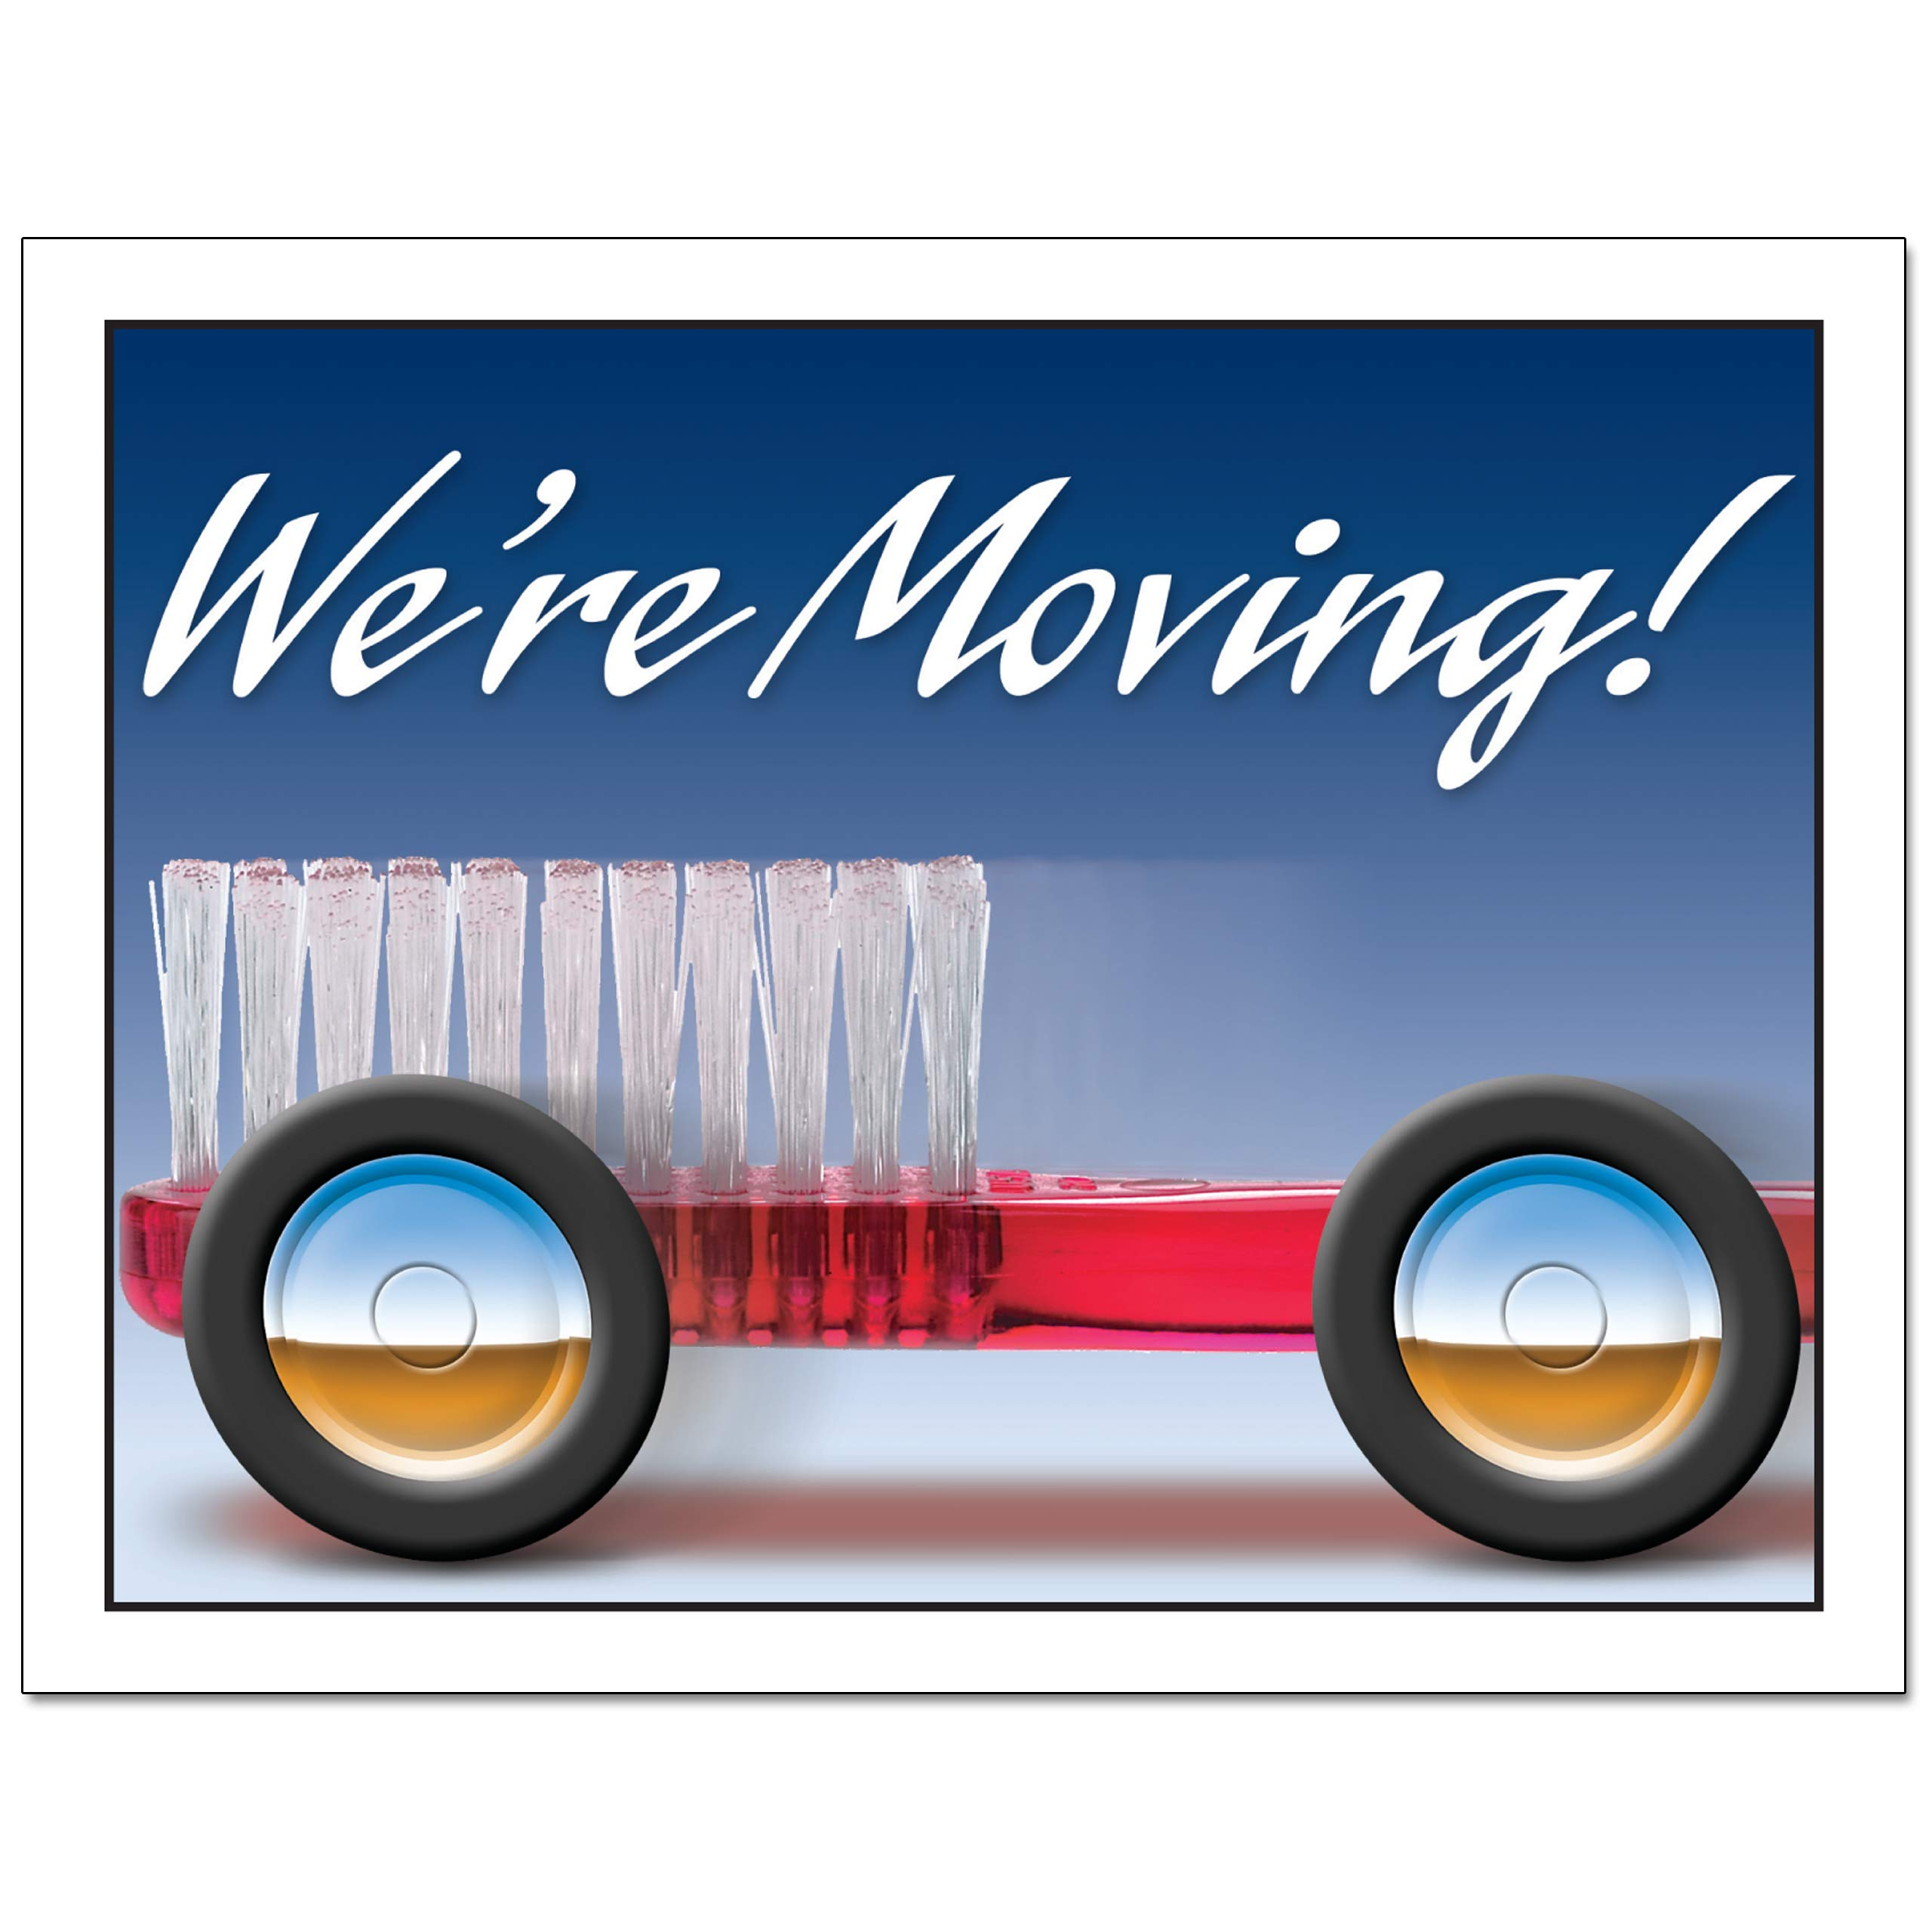 Laser Reminder Moving Notice Postcards, Dental Moving Notice Postcards. 4 Cards Perforated for Tear-Off at 4.25'' x 5.5'' on an 8.5'' x 11'' Sheet of 8 Pt Card Stock. MOV520LZS (1000) by Custom Recall (Image #3)